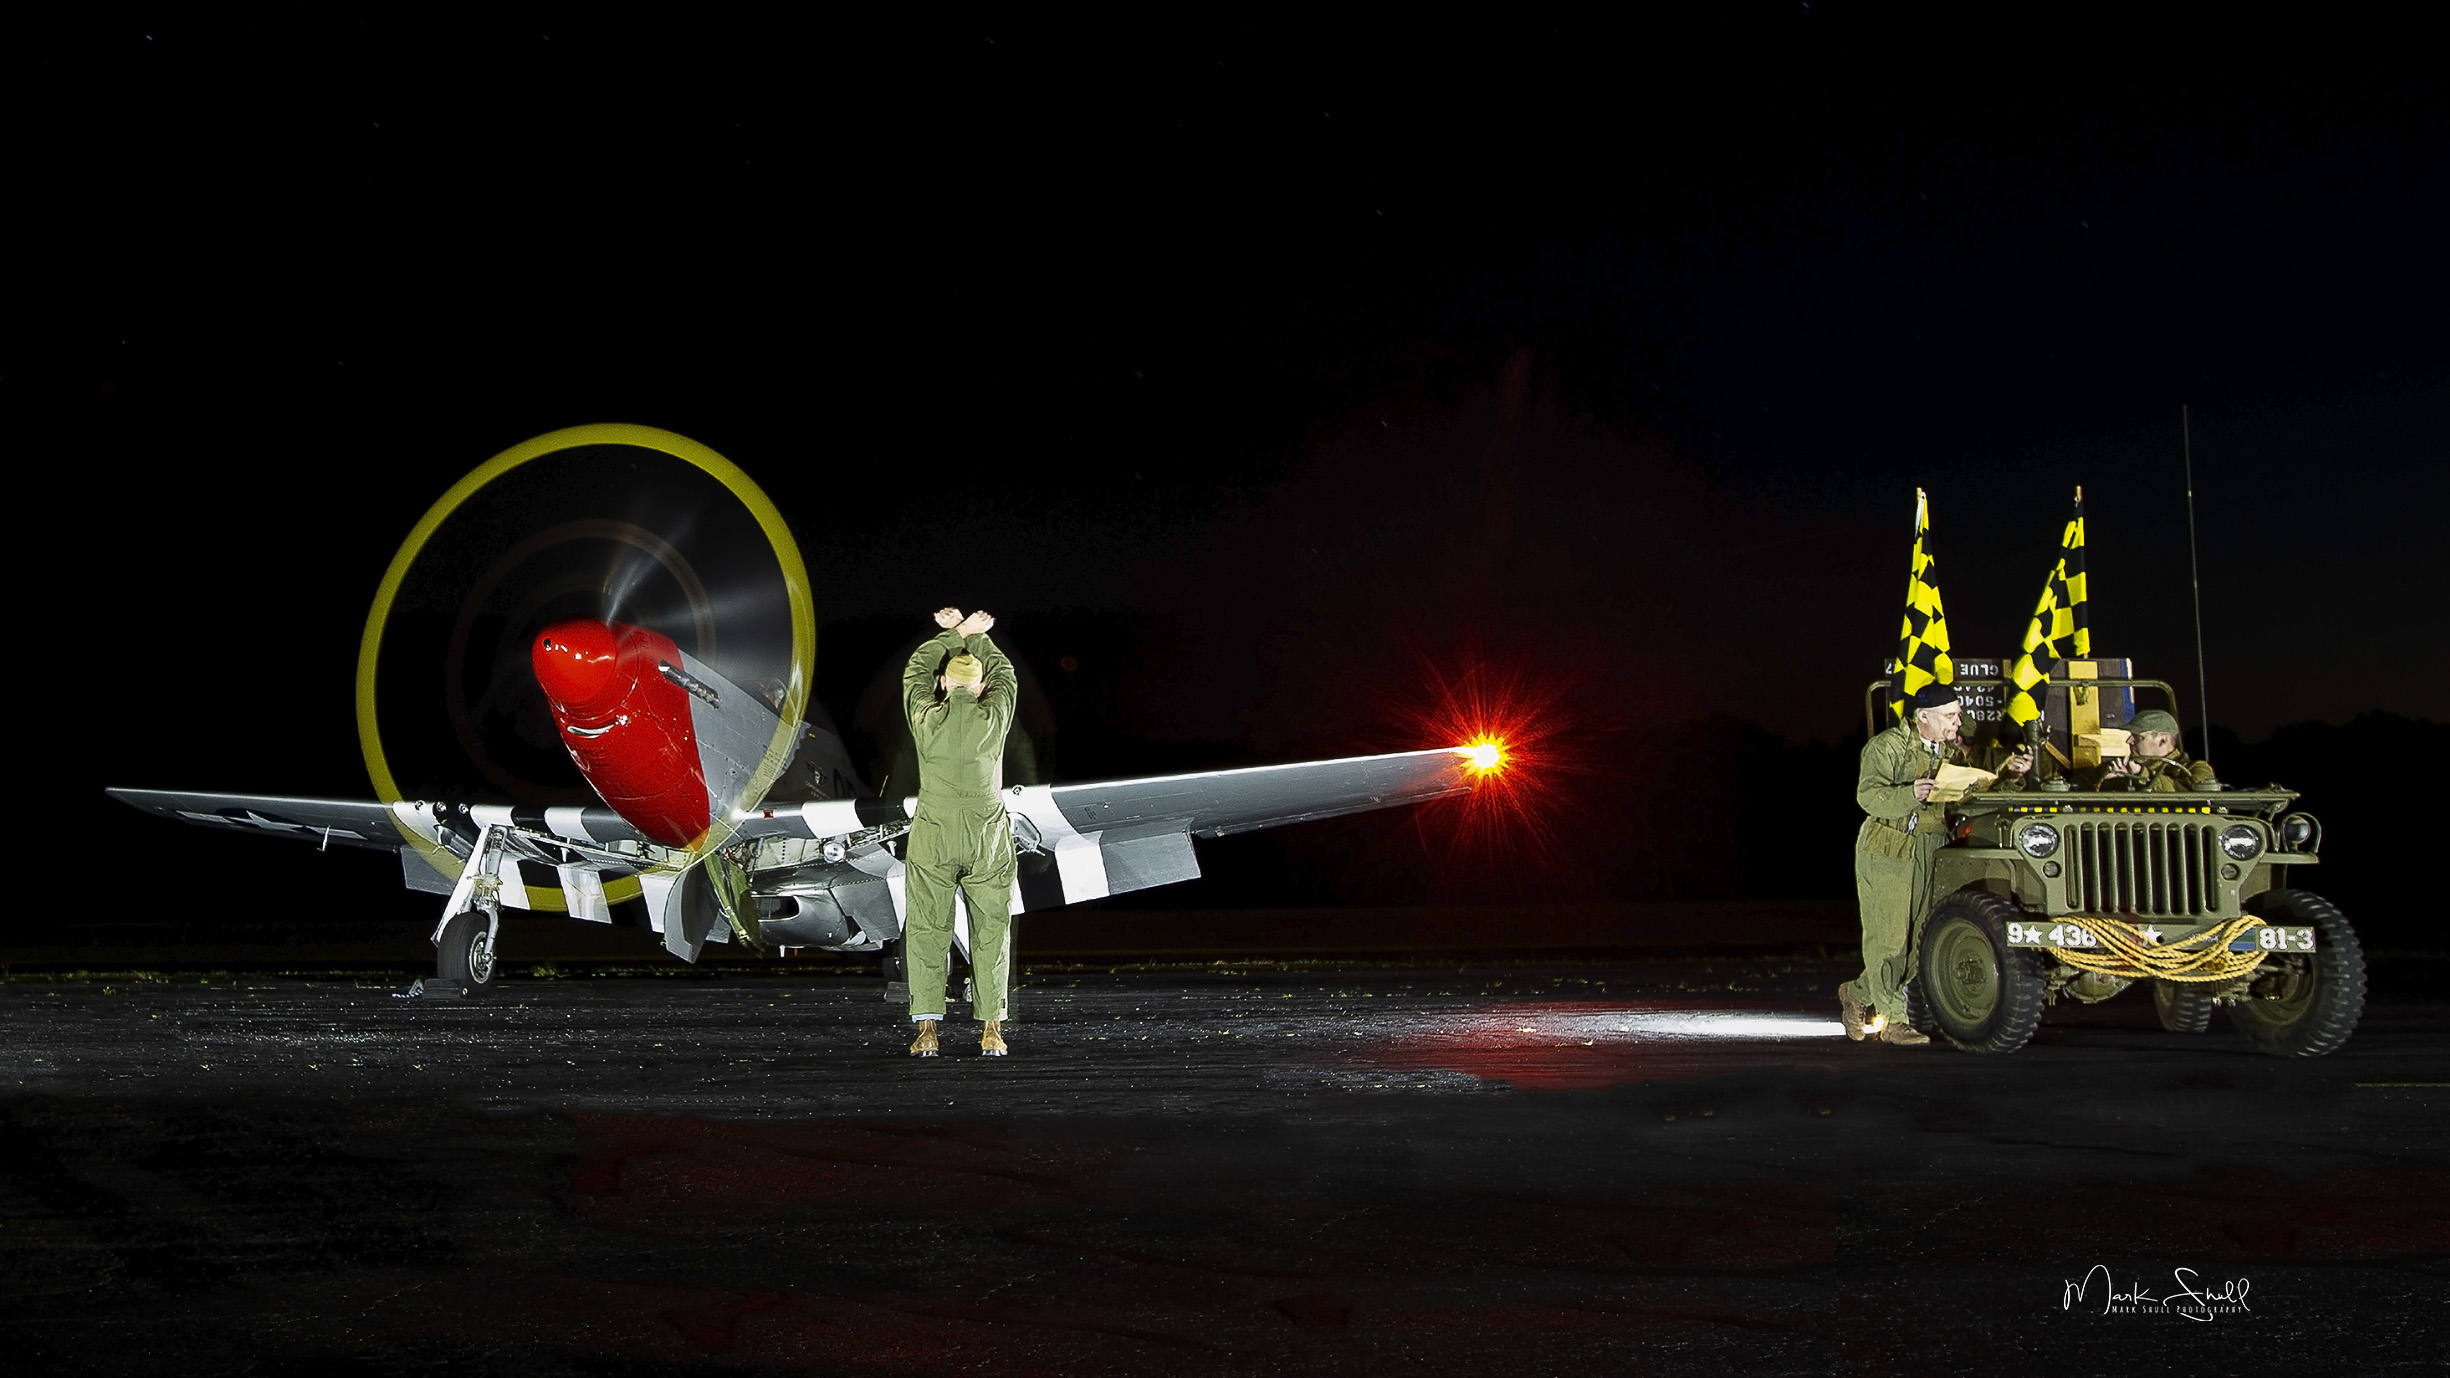 P-51 Mustang night crew post